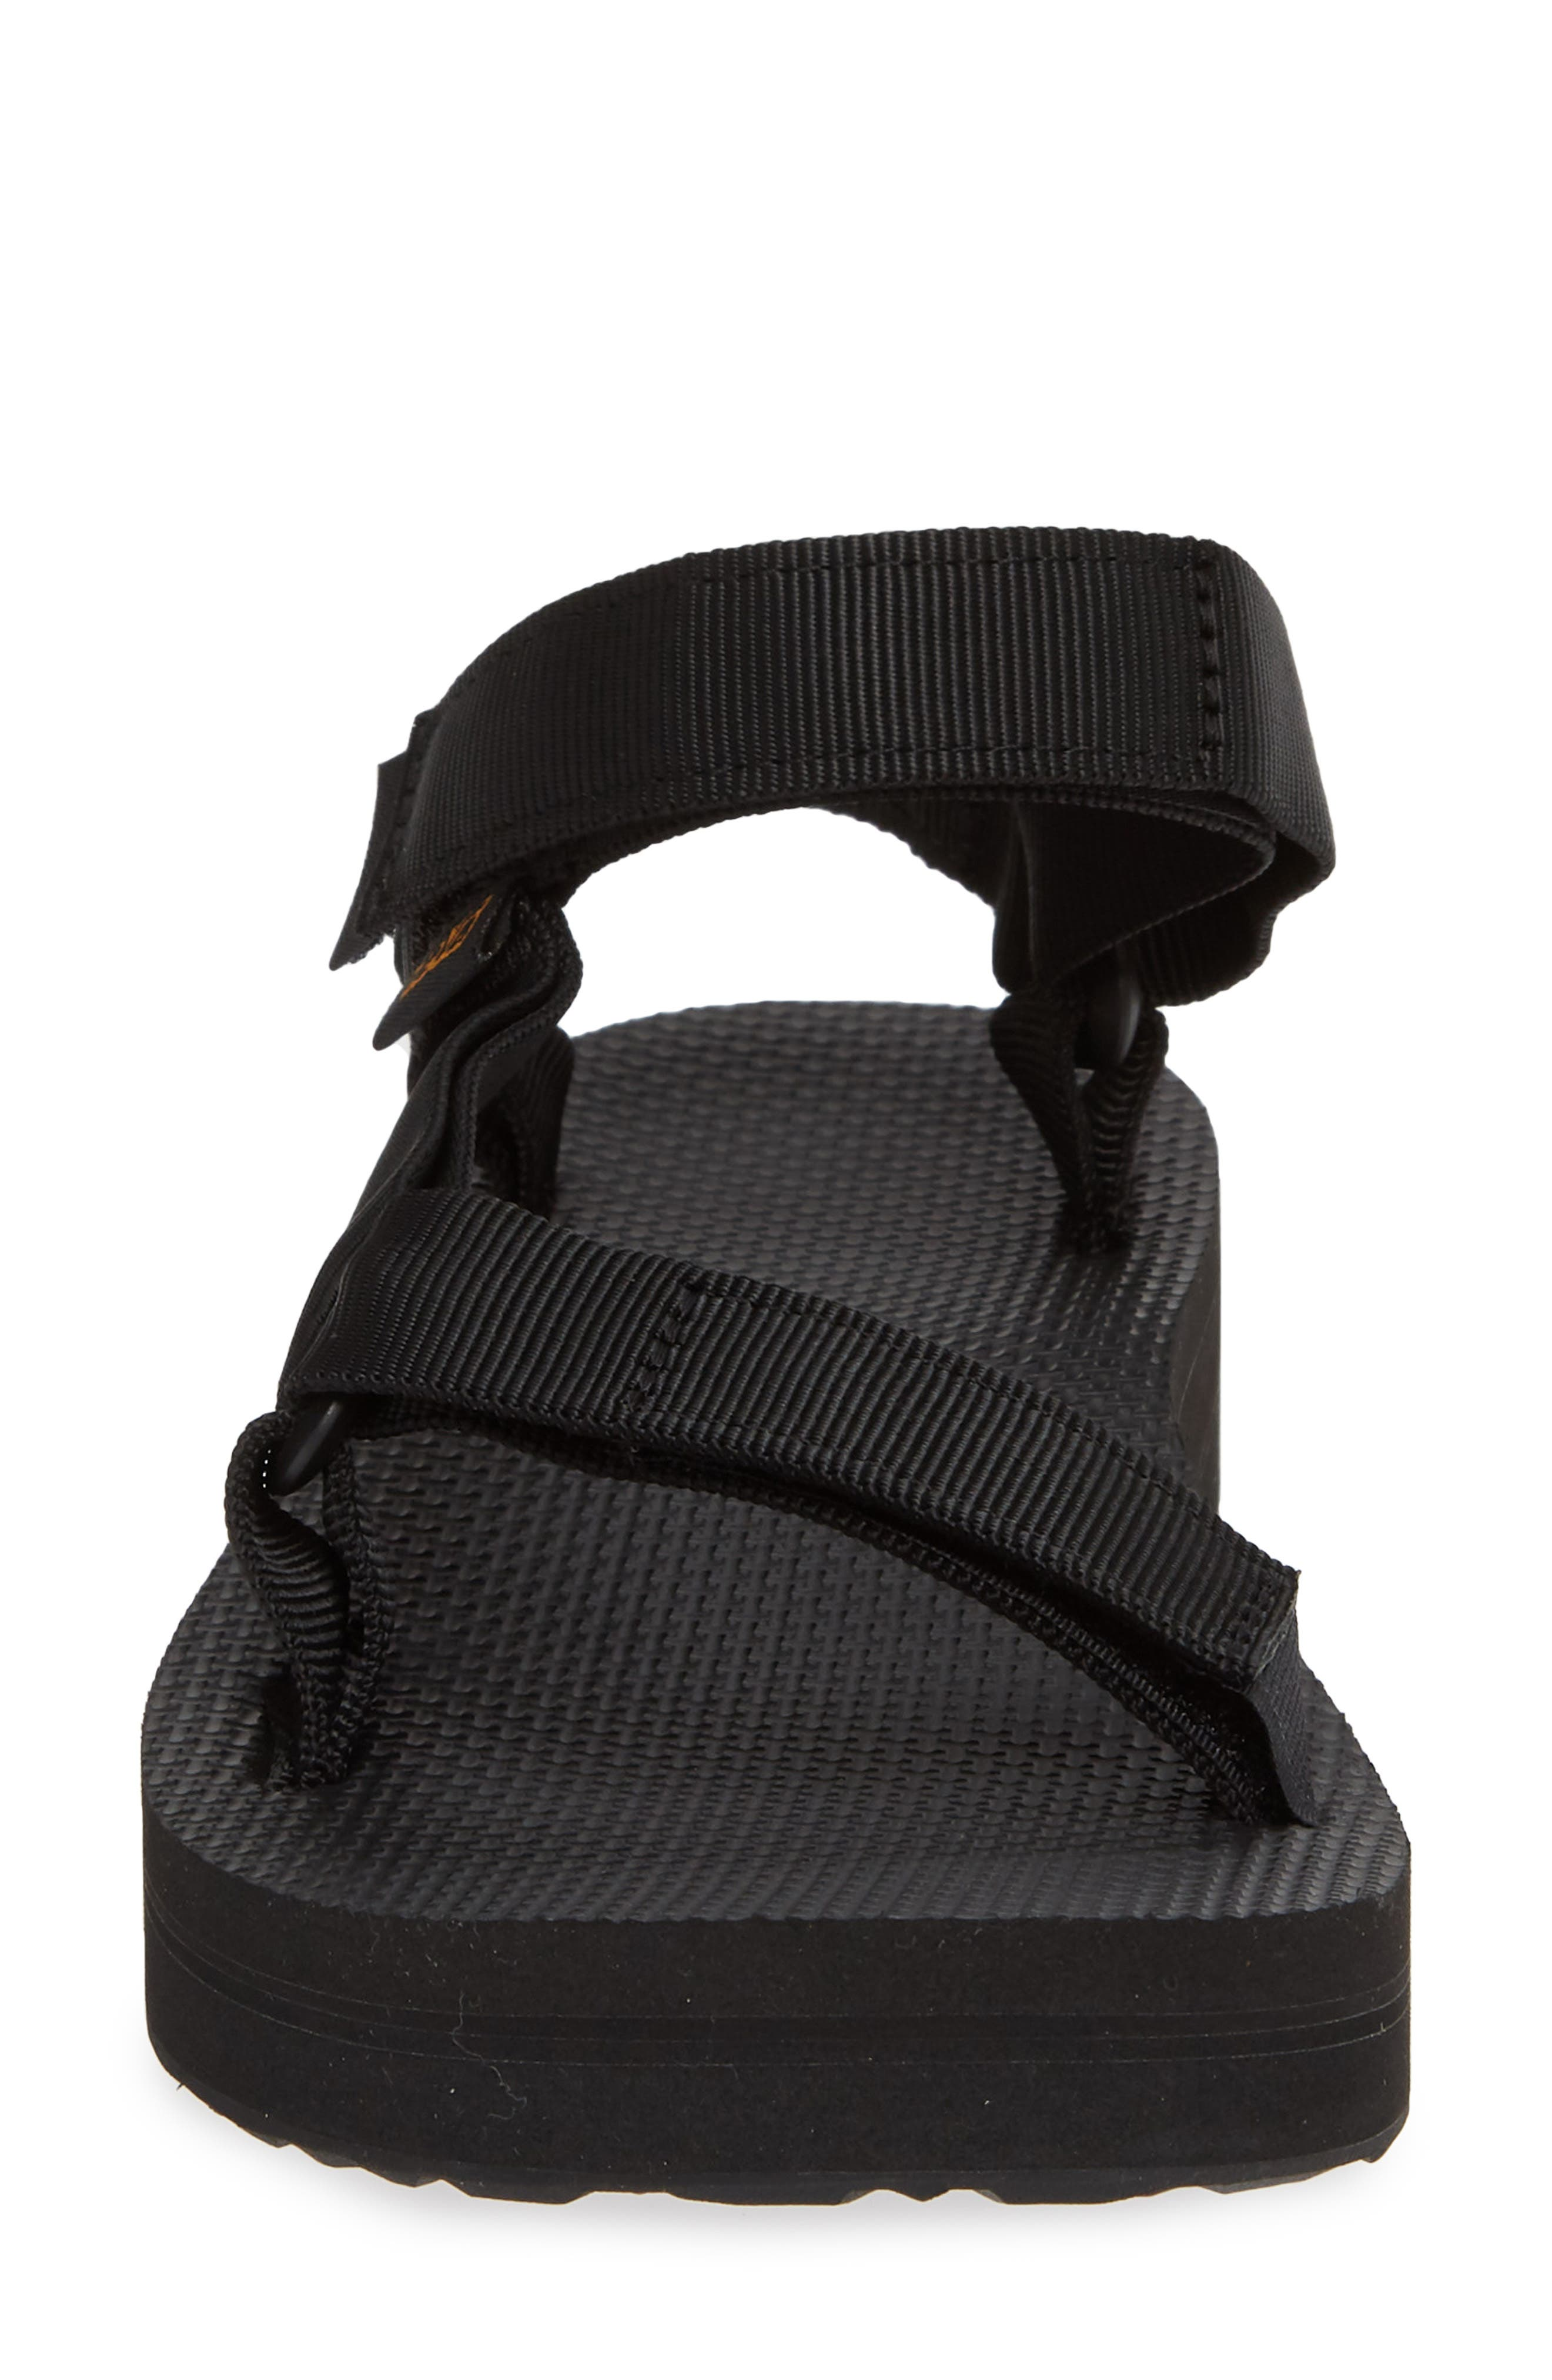 Midform Universal Geometric Sandal,                             Alternate thumbnail 4, color,                             BLACK FABRIC